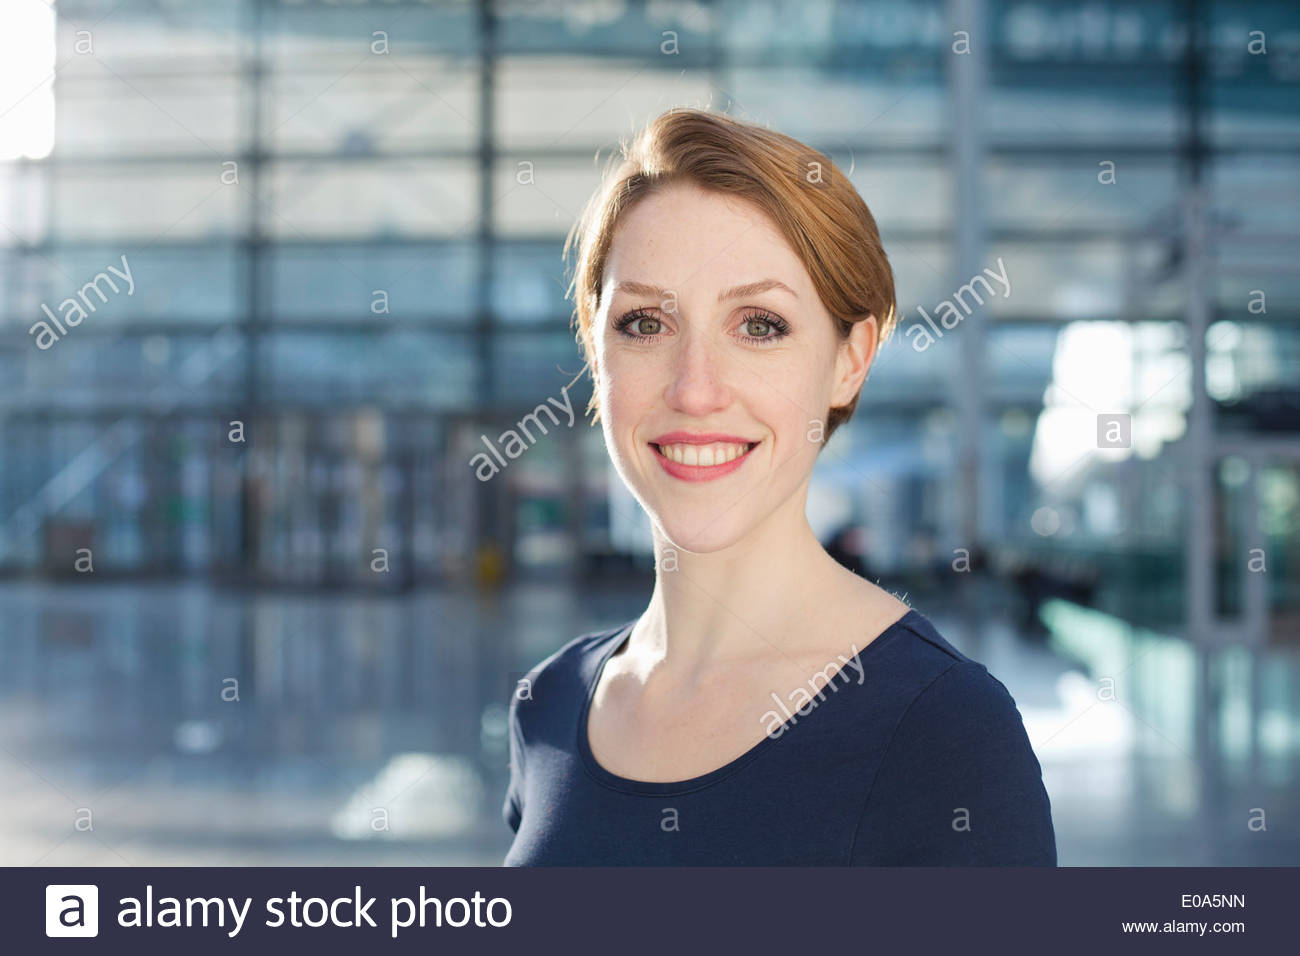 Close up of young woman - Stock Image